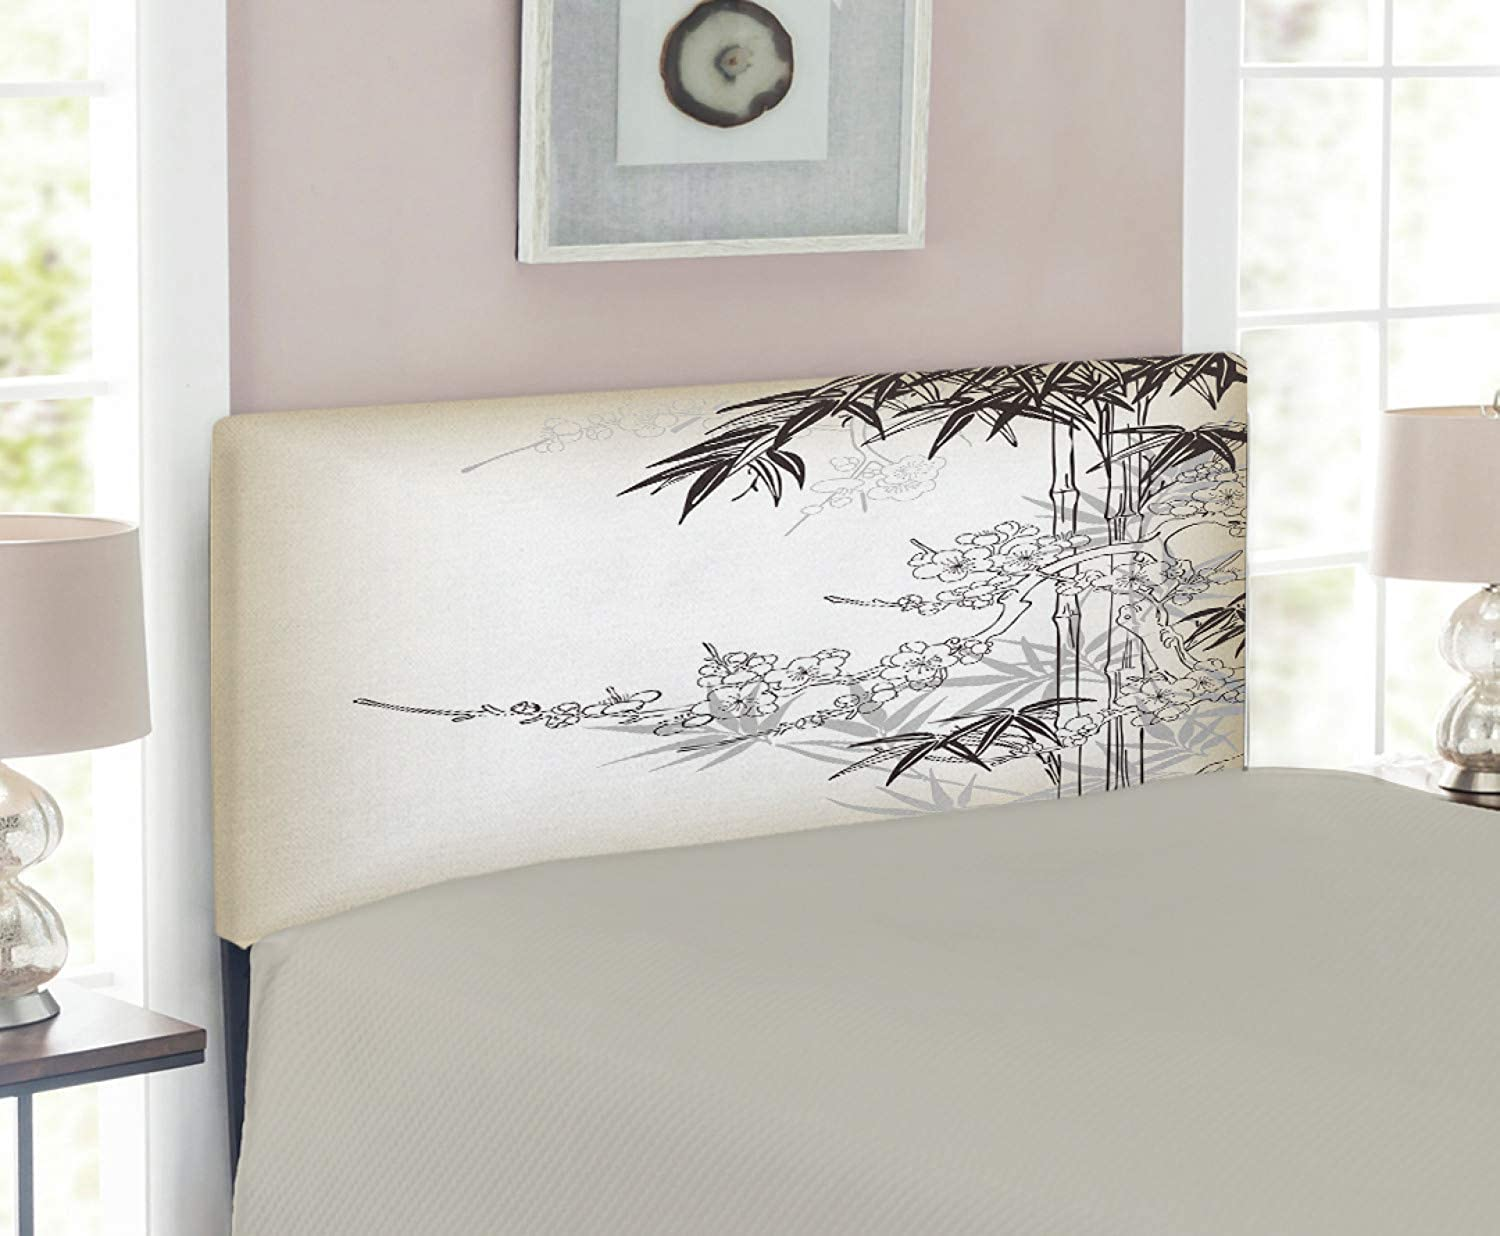 Lunarable Bamboo Tree Headboard for Twin Size Bed, Abstract Tree and Japanese Bamboo Pattern Floral Leaf Design Blossoms Artistic, Upholstered Decorative Metal Headboard with Memory Foam, Tan Brown